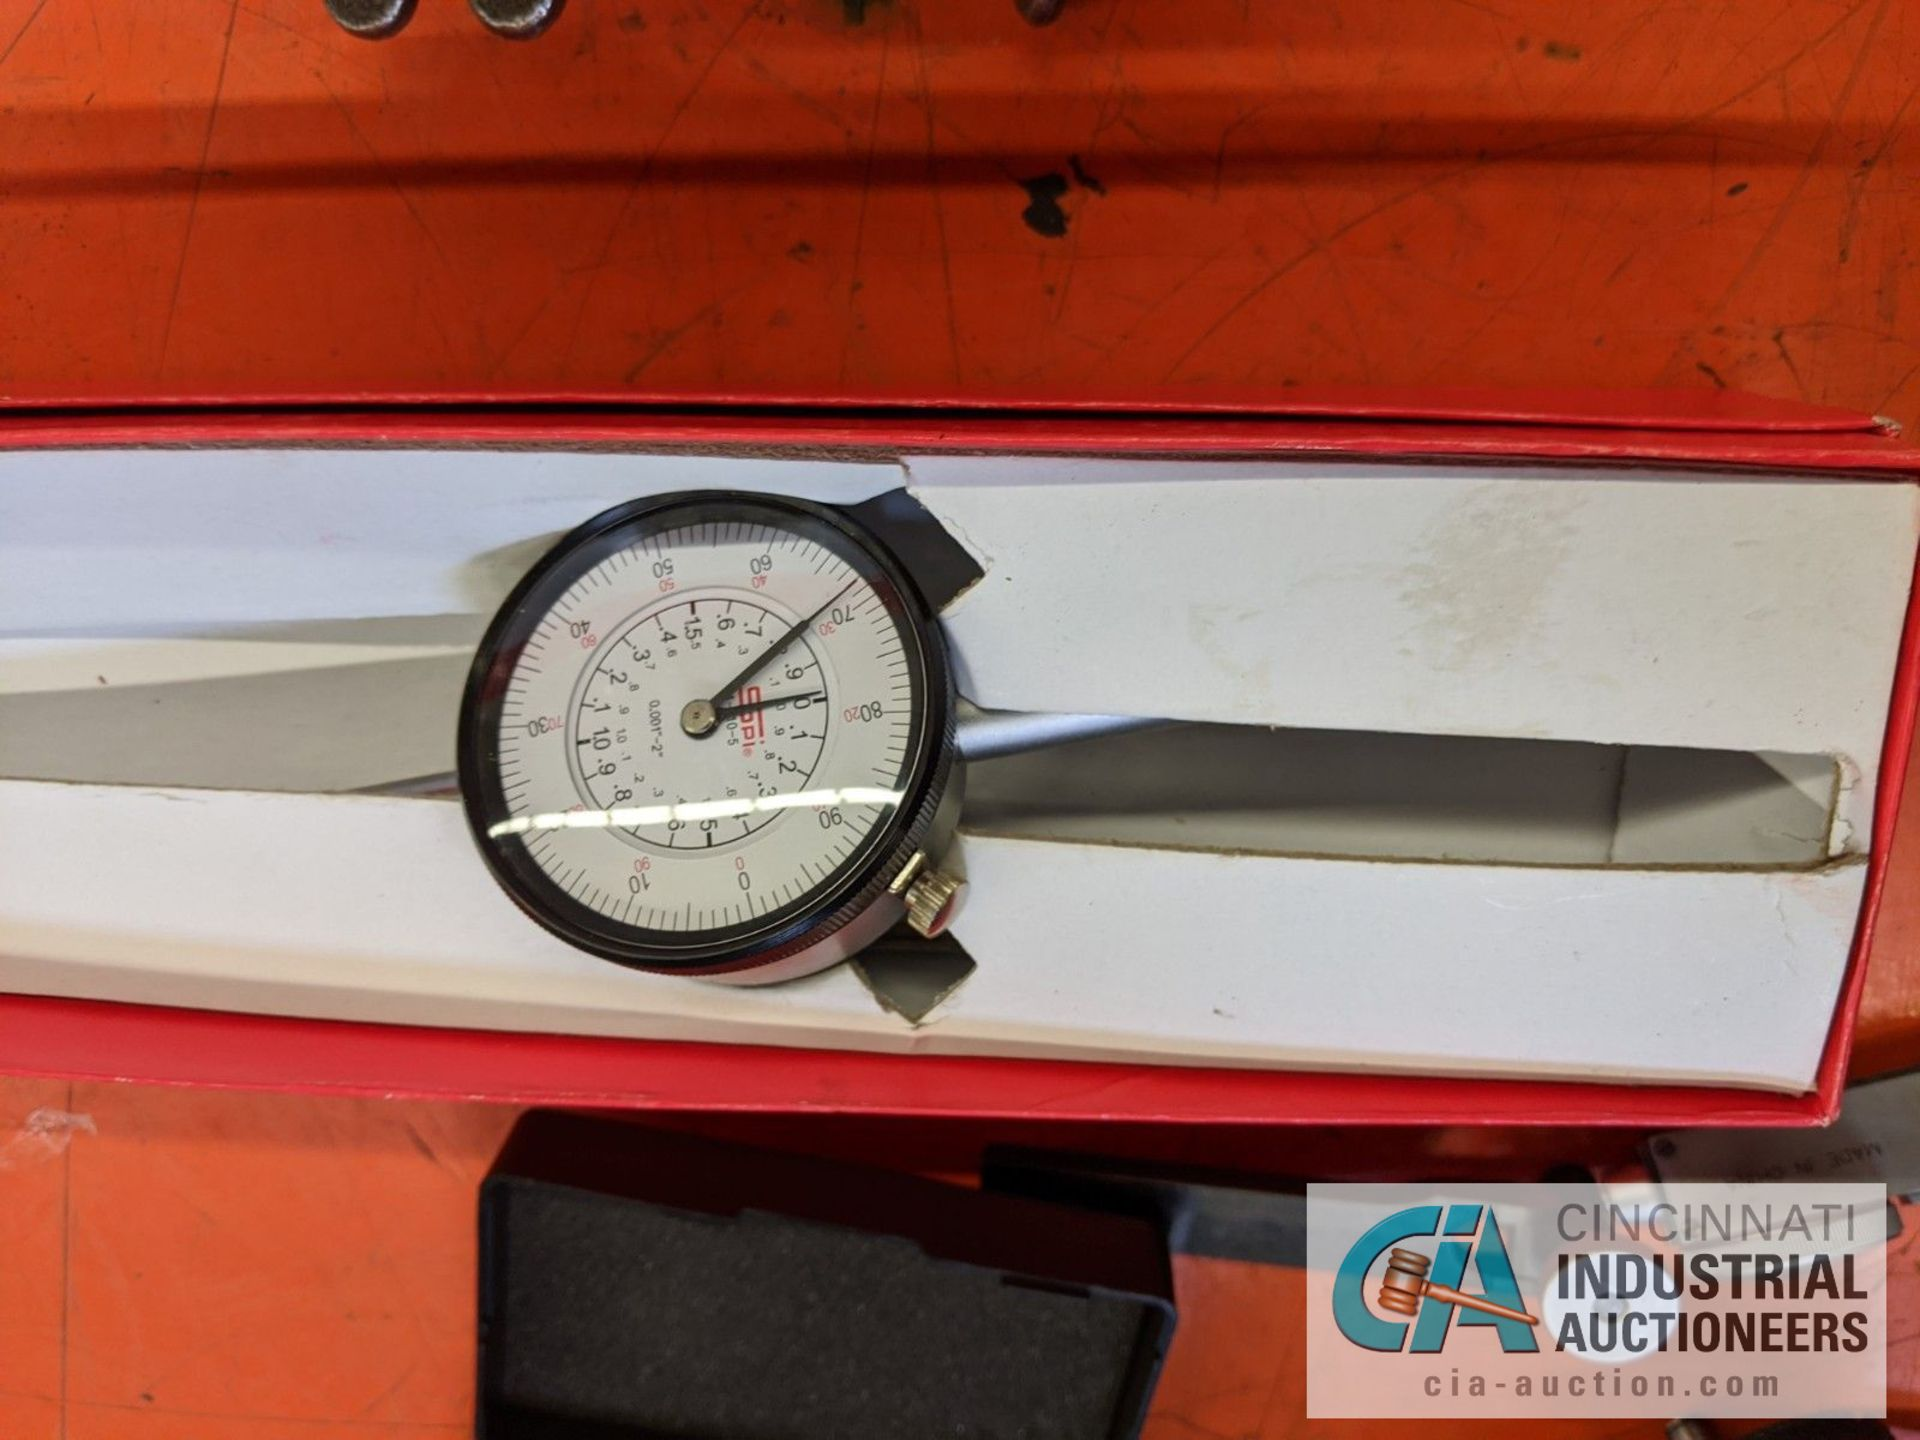 (LOT) ASSORTED DIAL INDICATORS - Image 3 of 7